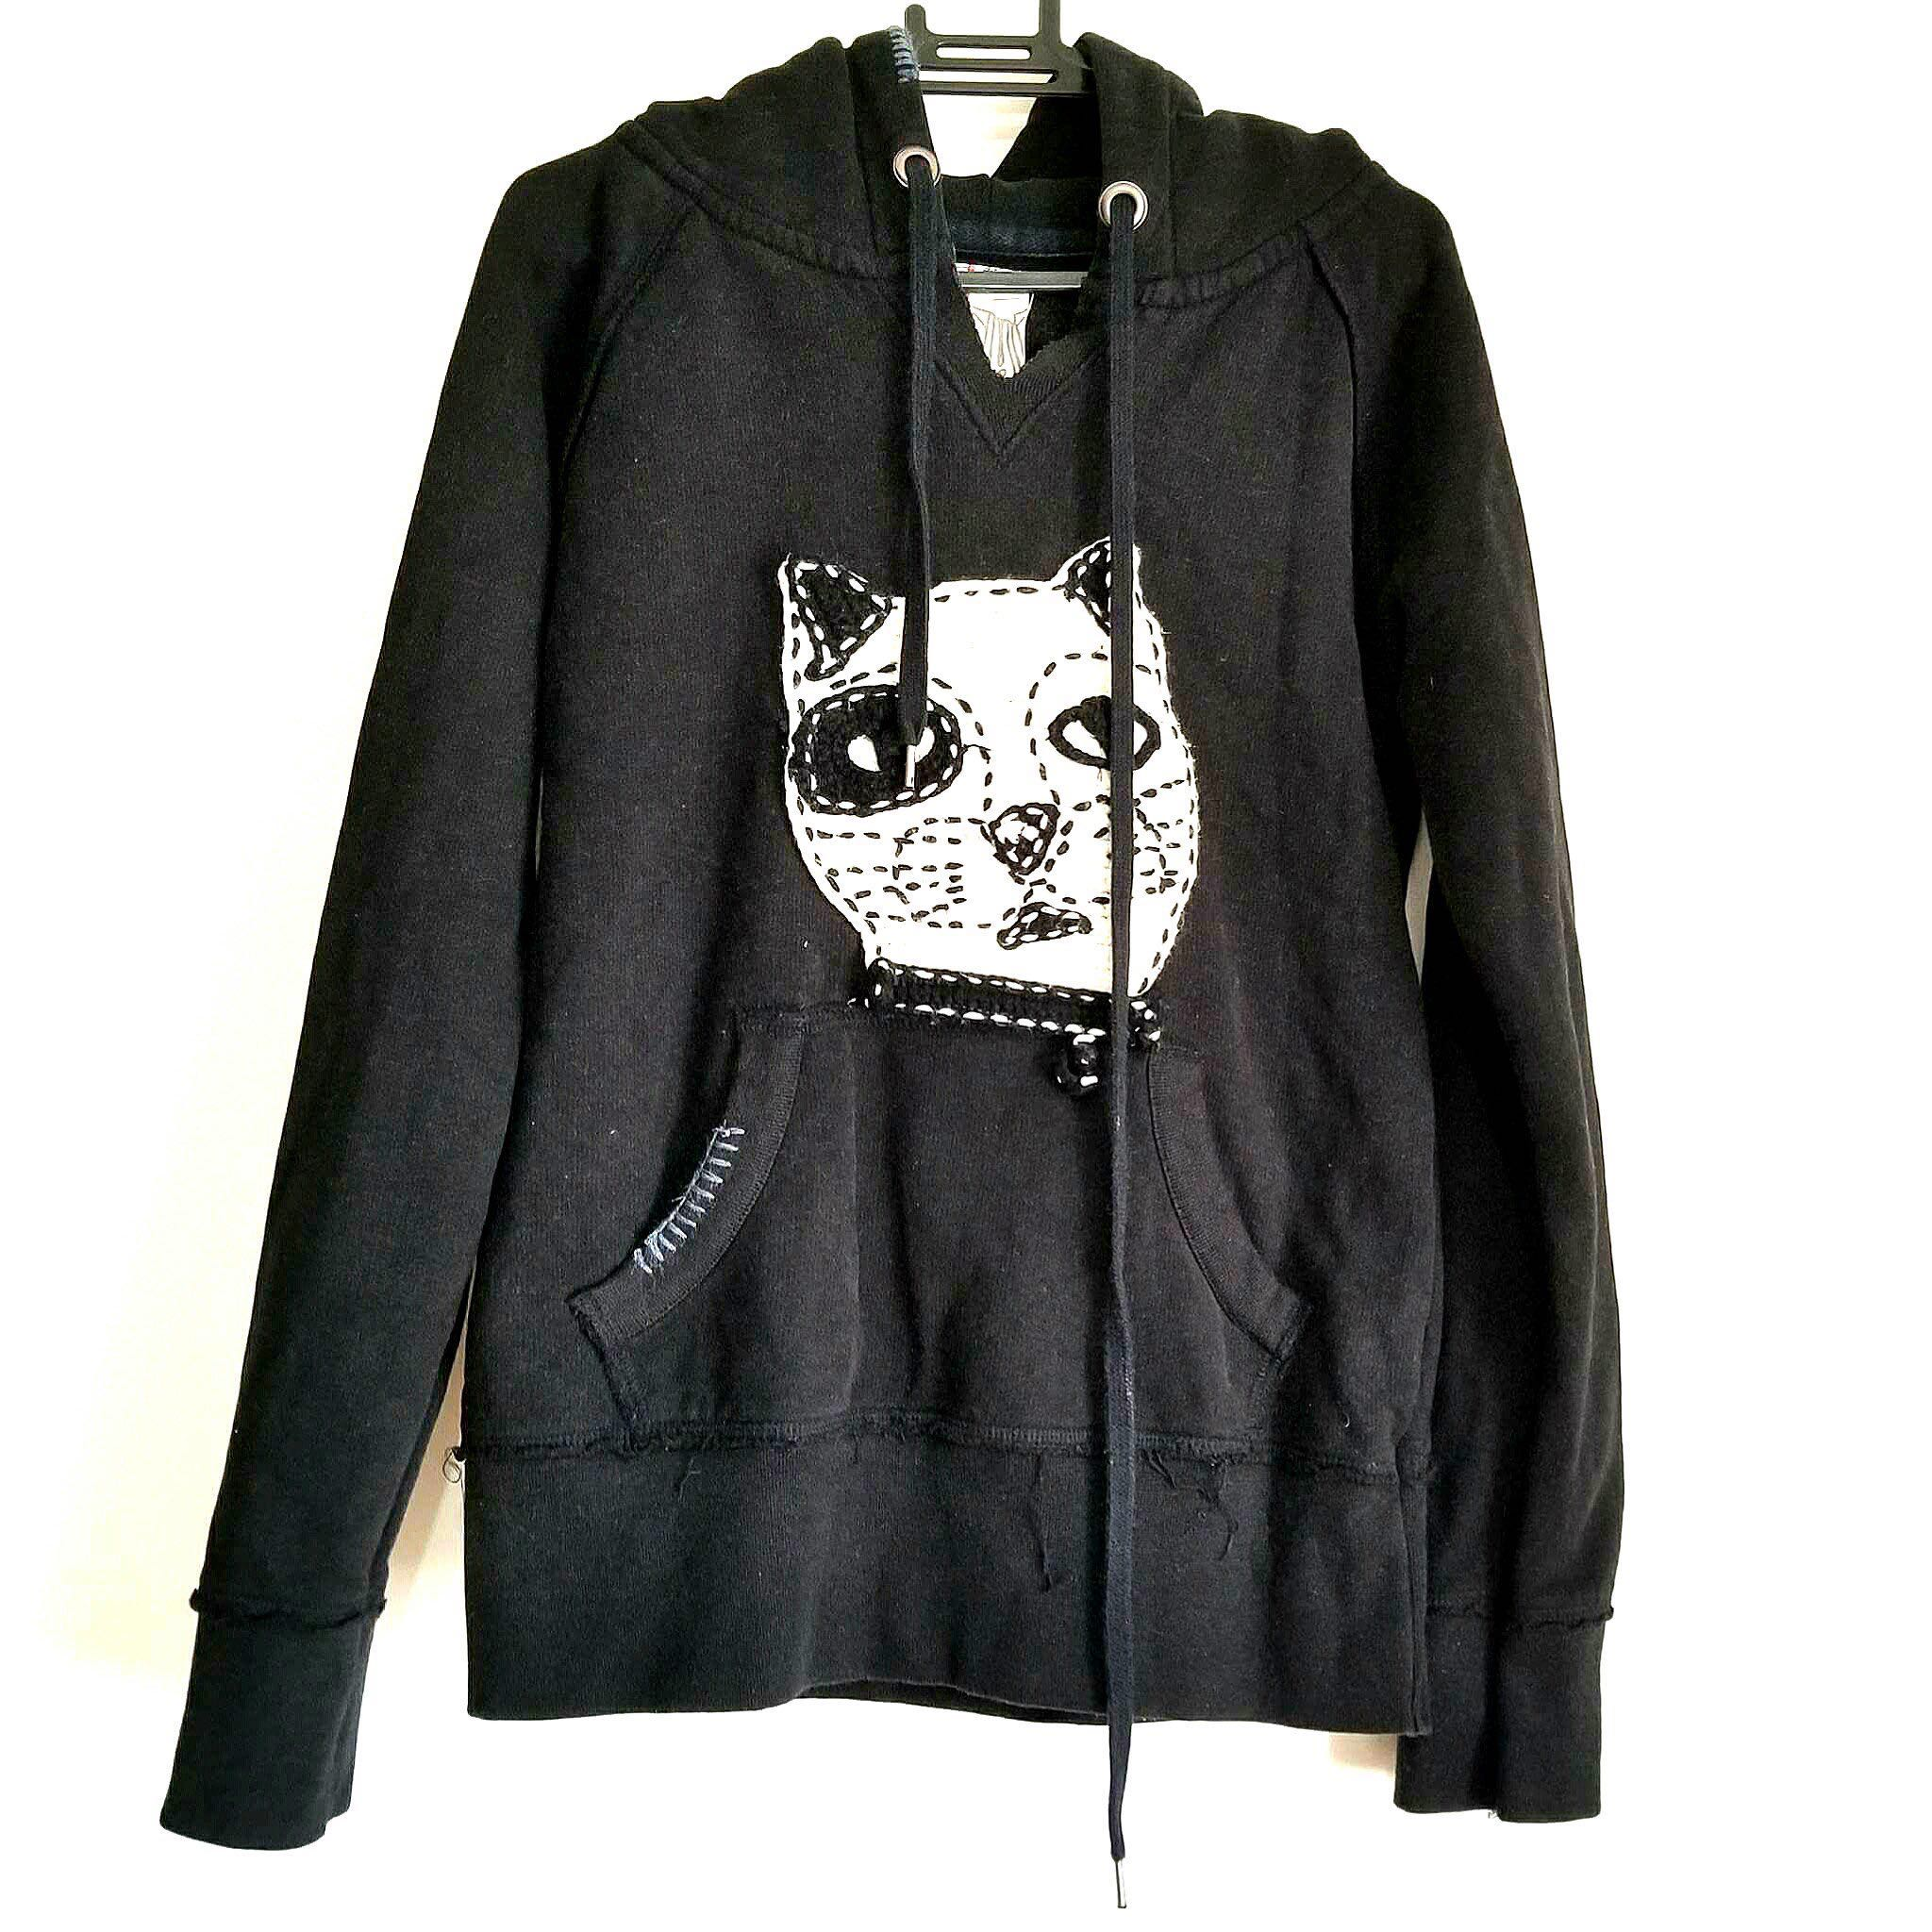 7a3141a0 Repriced-Zara Trafaluc Black Hoodie with Cat Embroidered Design ...